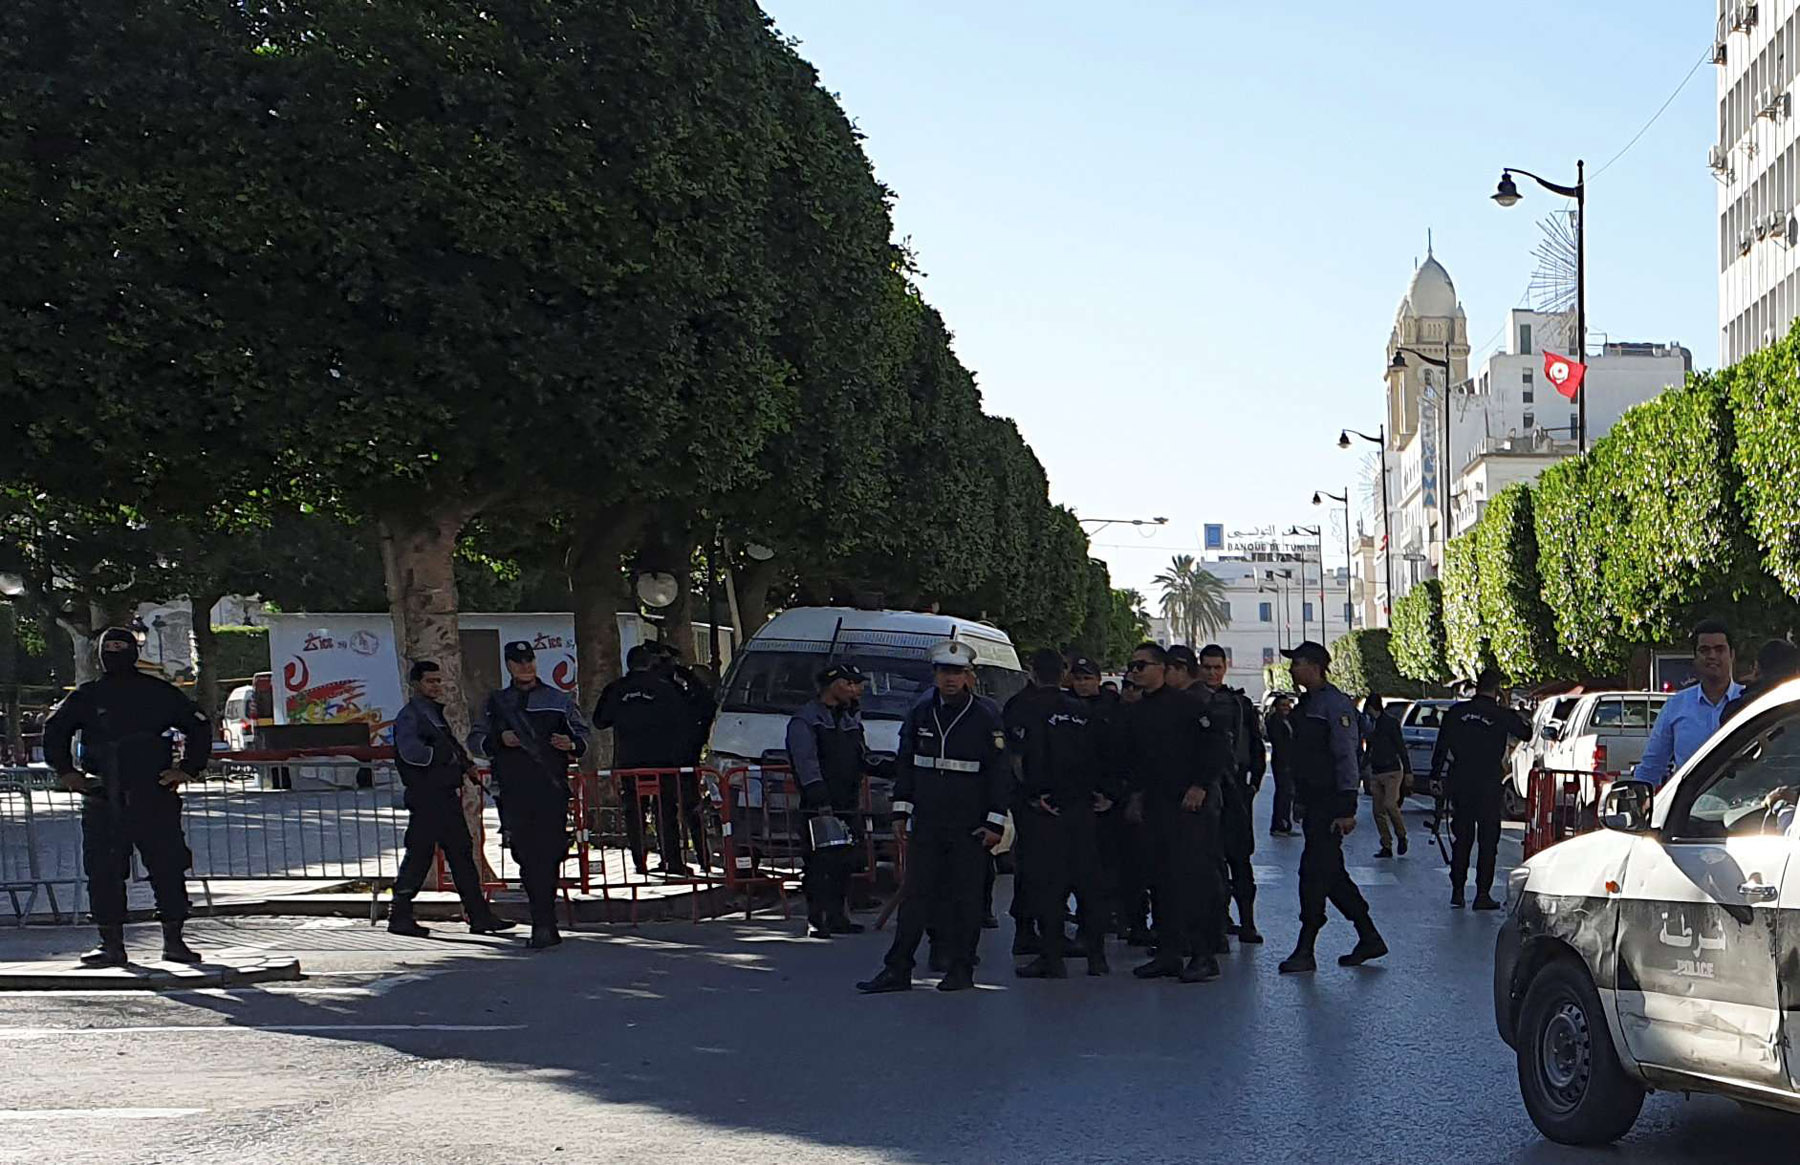 Police close off the area near the site of an explosion in the center of the Tunisian capital Tunis, Tunisia October 29, 2018. (Reuters)